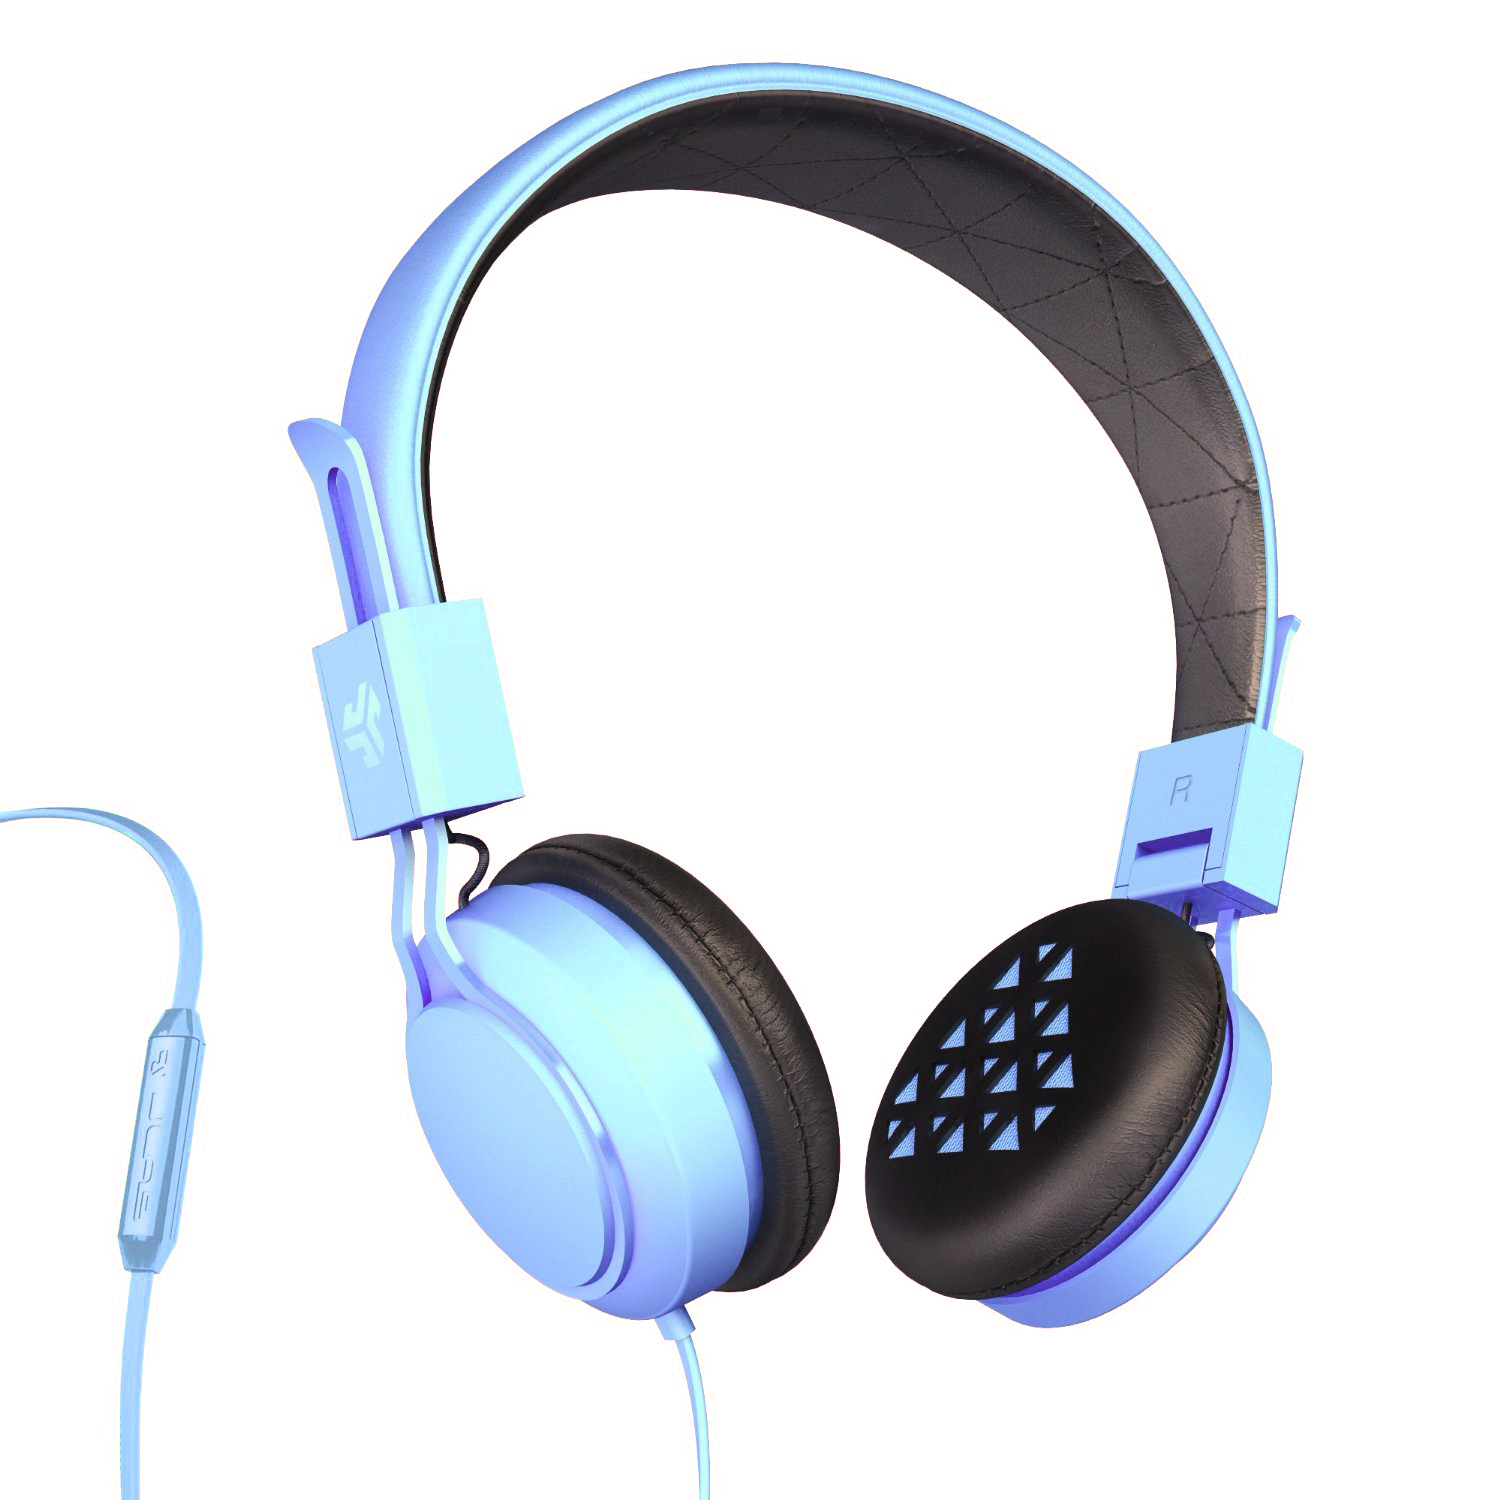 JLab Intro On-Ear Wired Stereo Folding Travel Headphones w/ Mic & Controls